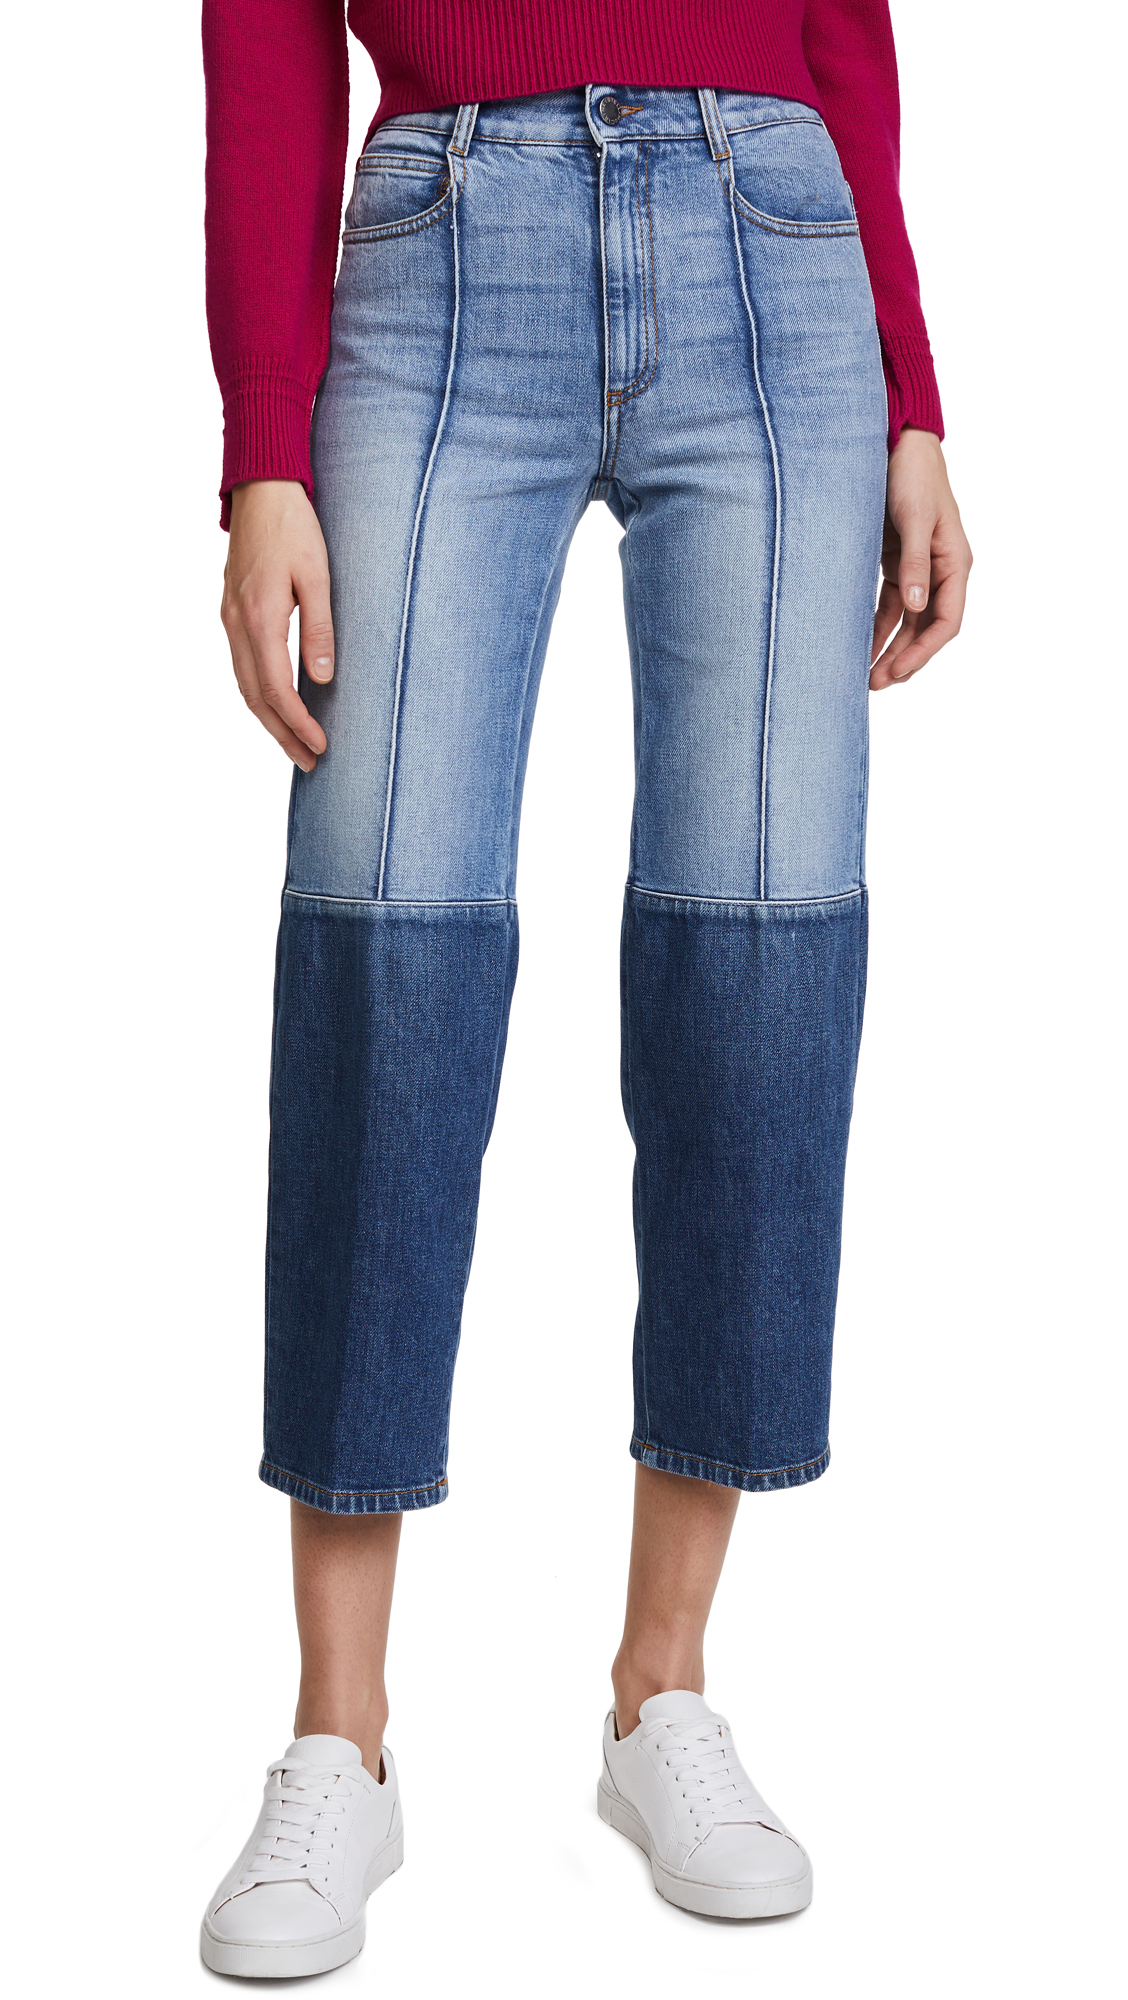 Stella McCartney The High Waist Two Tone Jeans